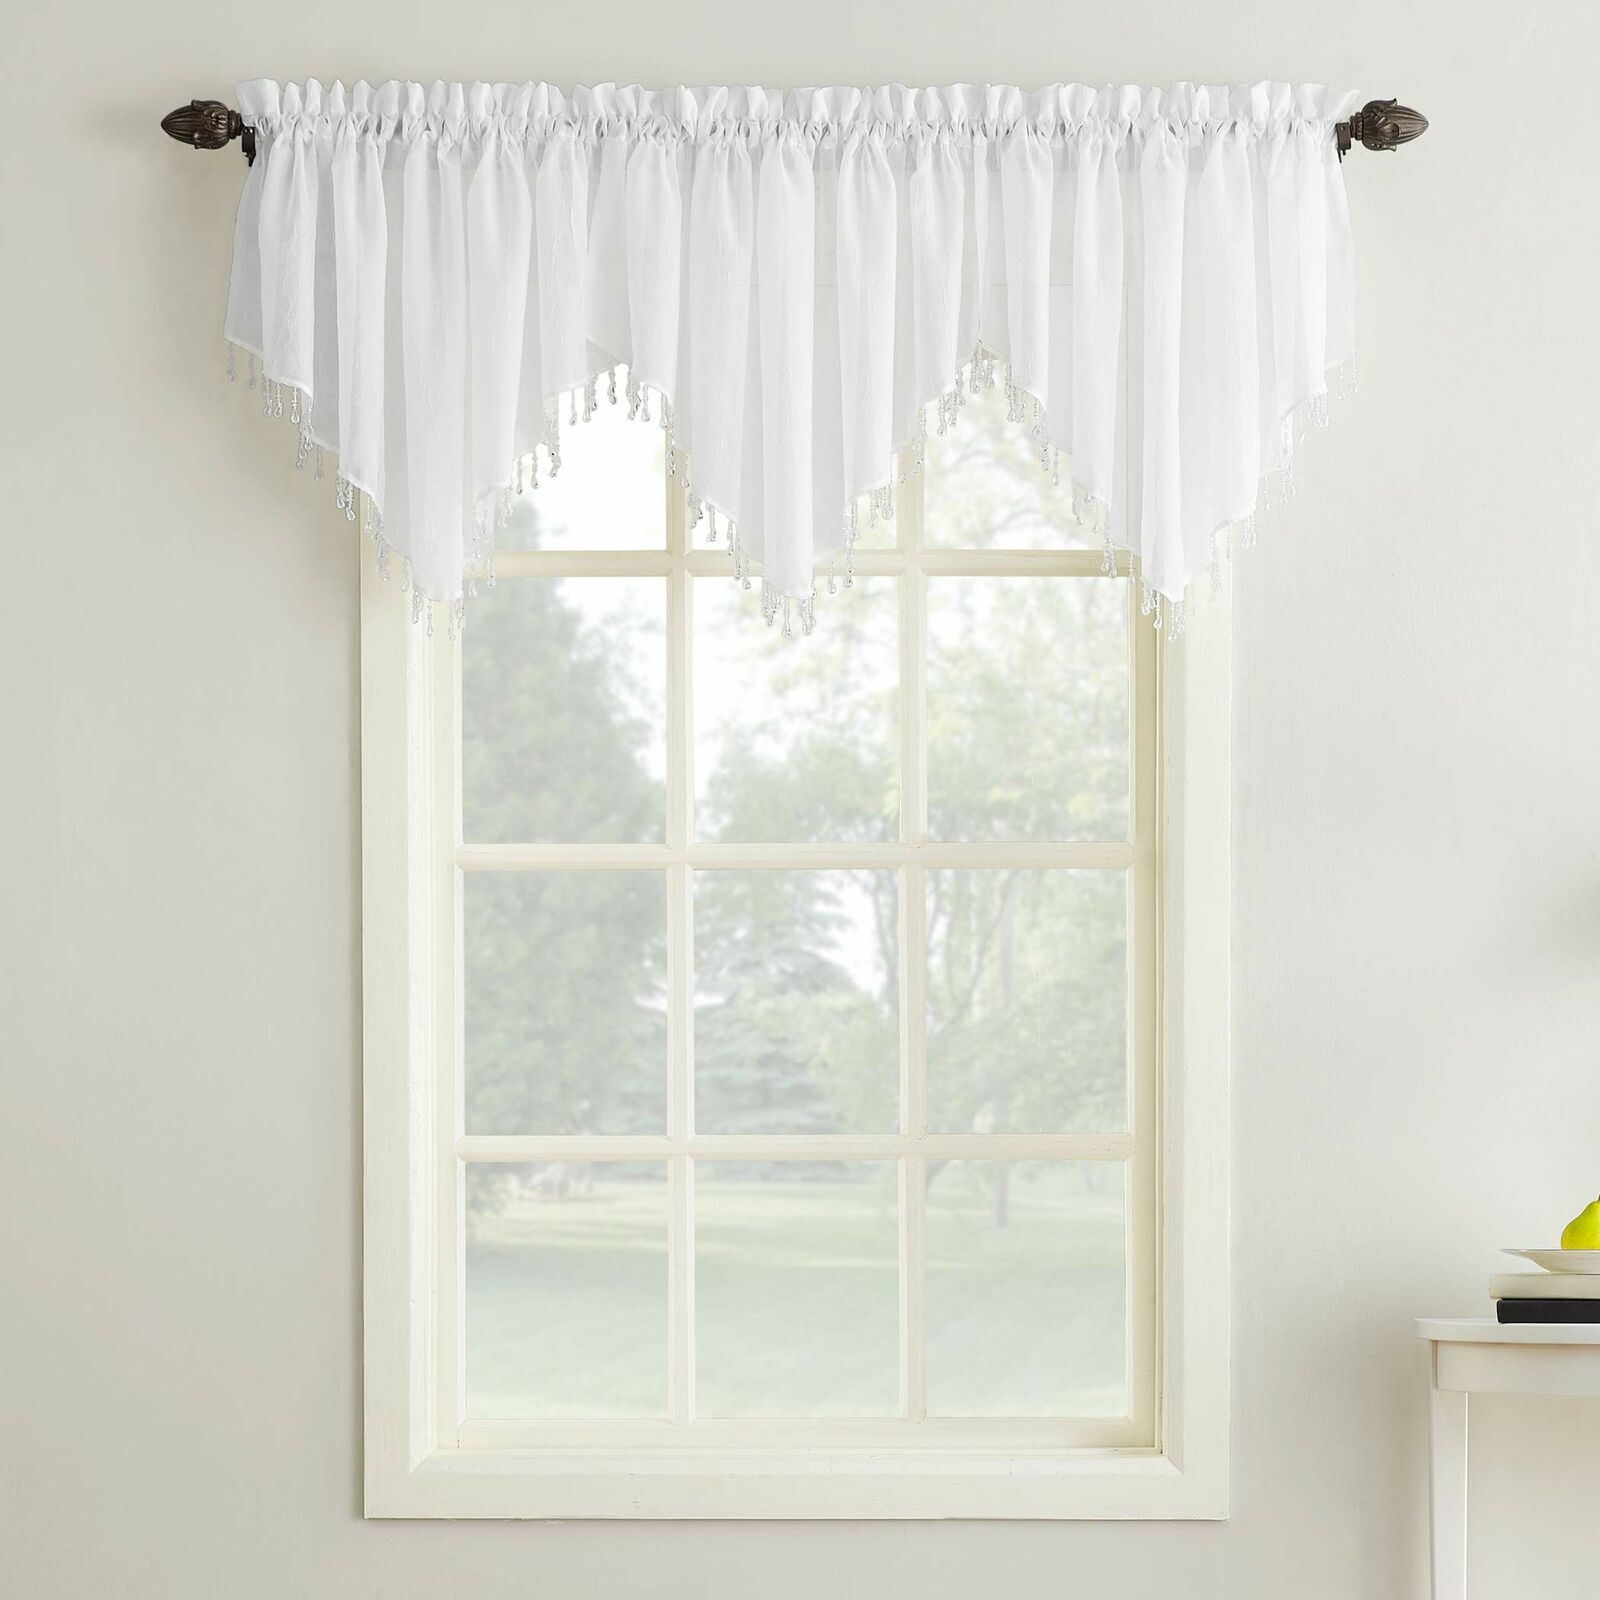 Erica Crushed Sheer Voile Ascot Beaded Curtain Valance 51 X 24 White For Erica Crushed Sheer Voile Grommet Curtain Panels (View 10 of 20)